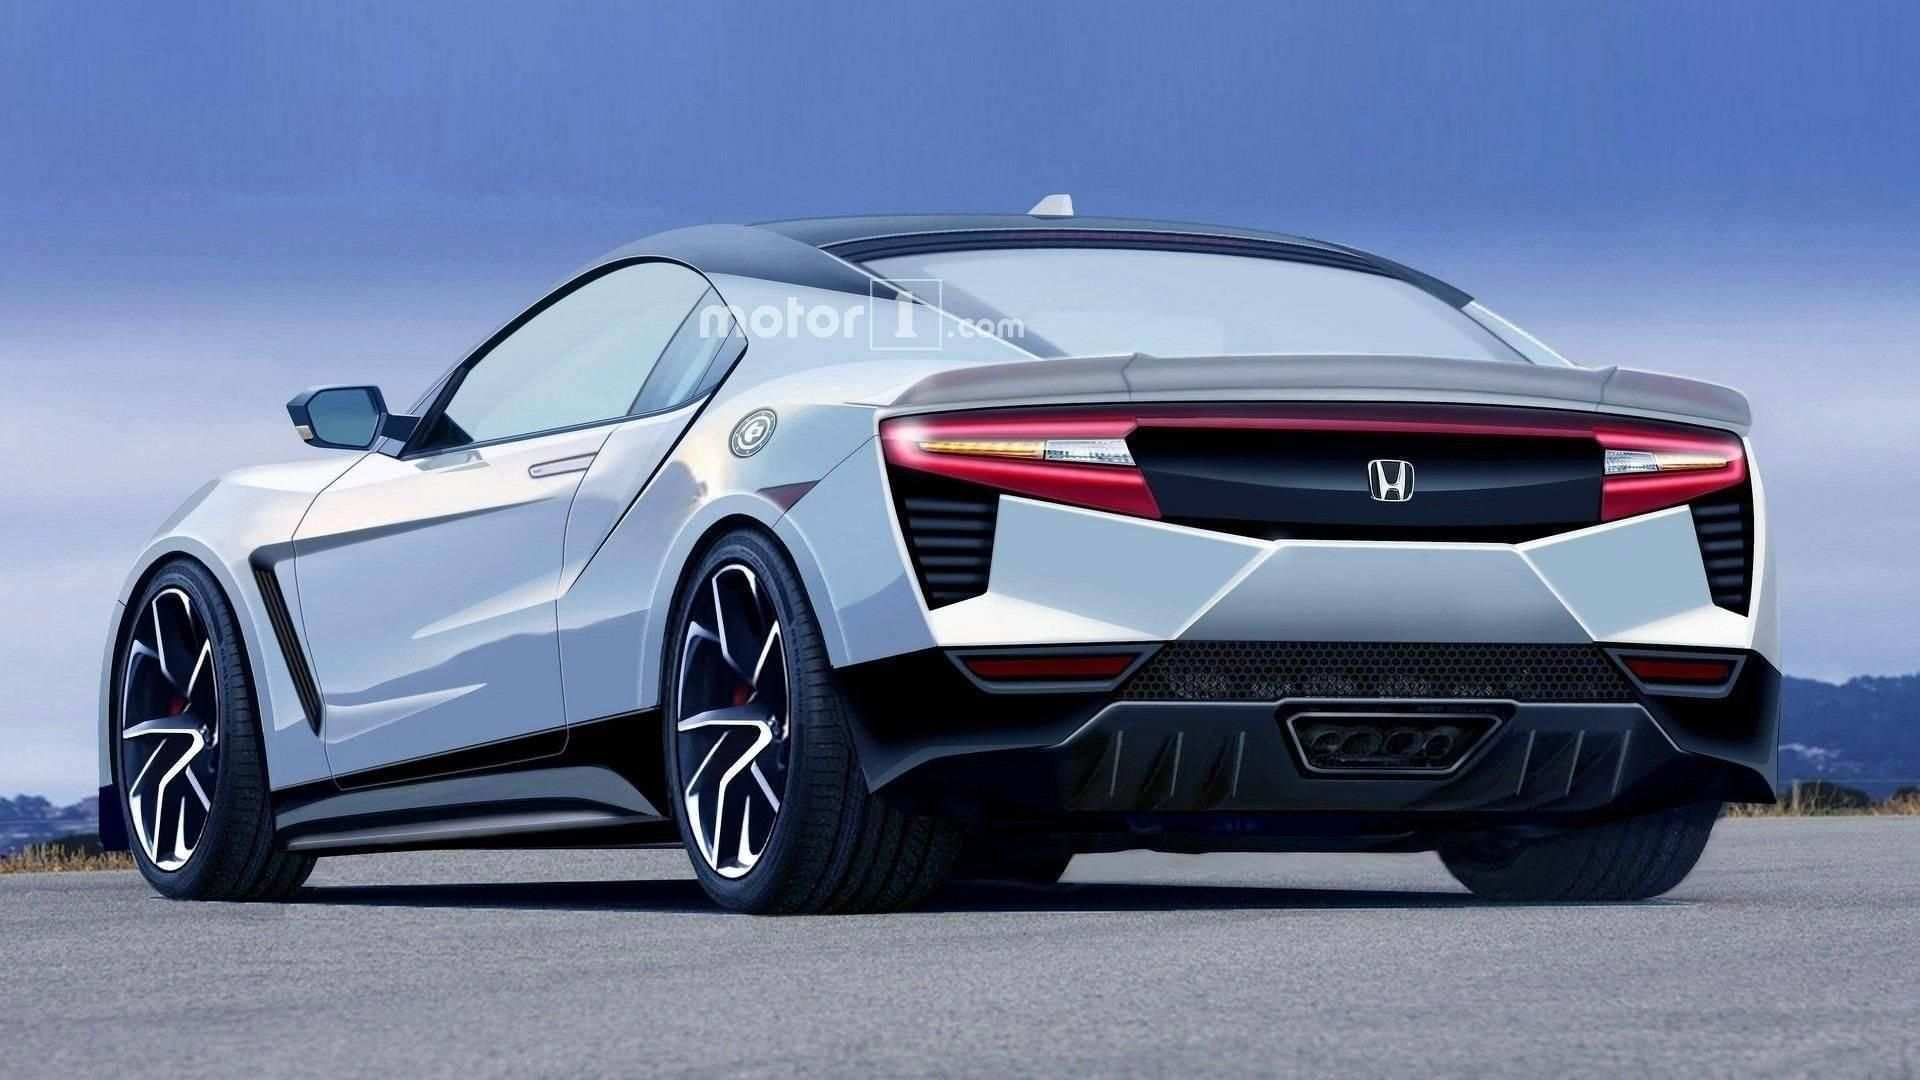 81 New 2020 Honda S2000and Exterior And Interior